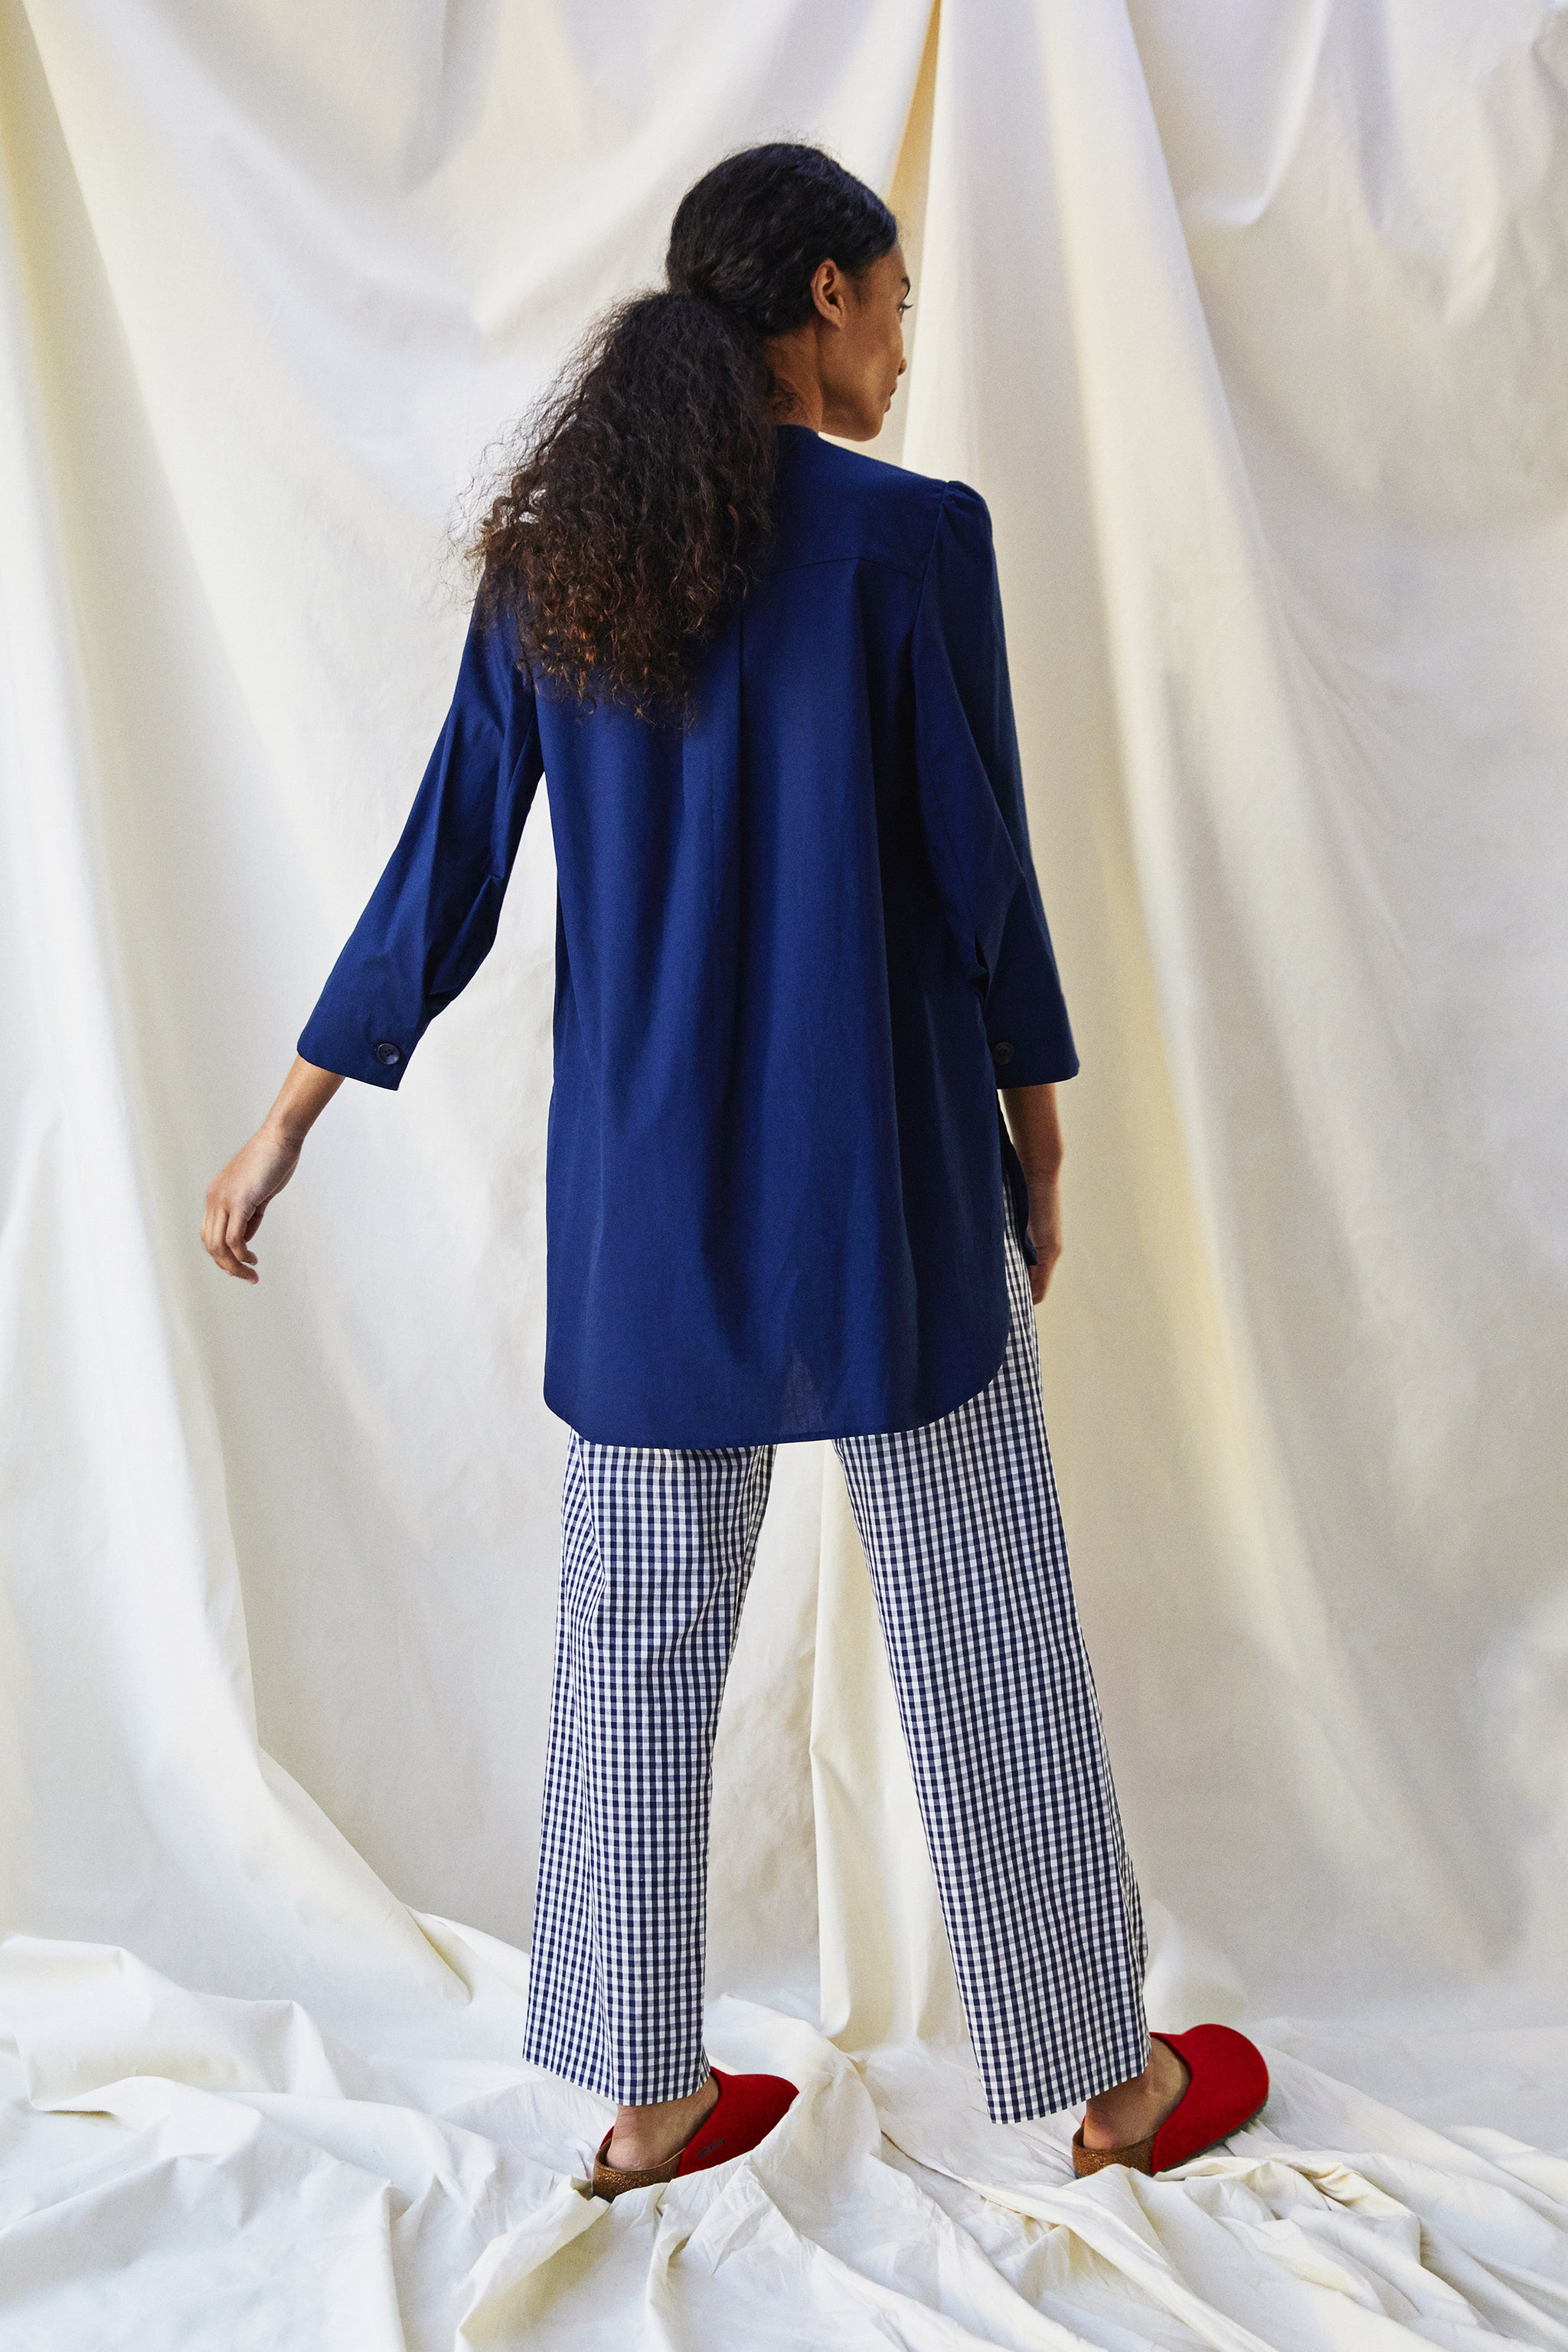 The Bethan Shirt - Indigo Blue